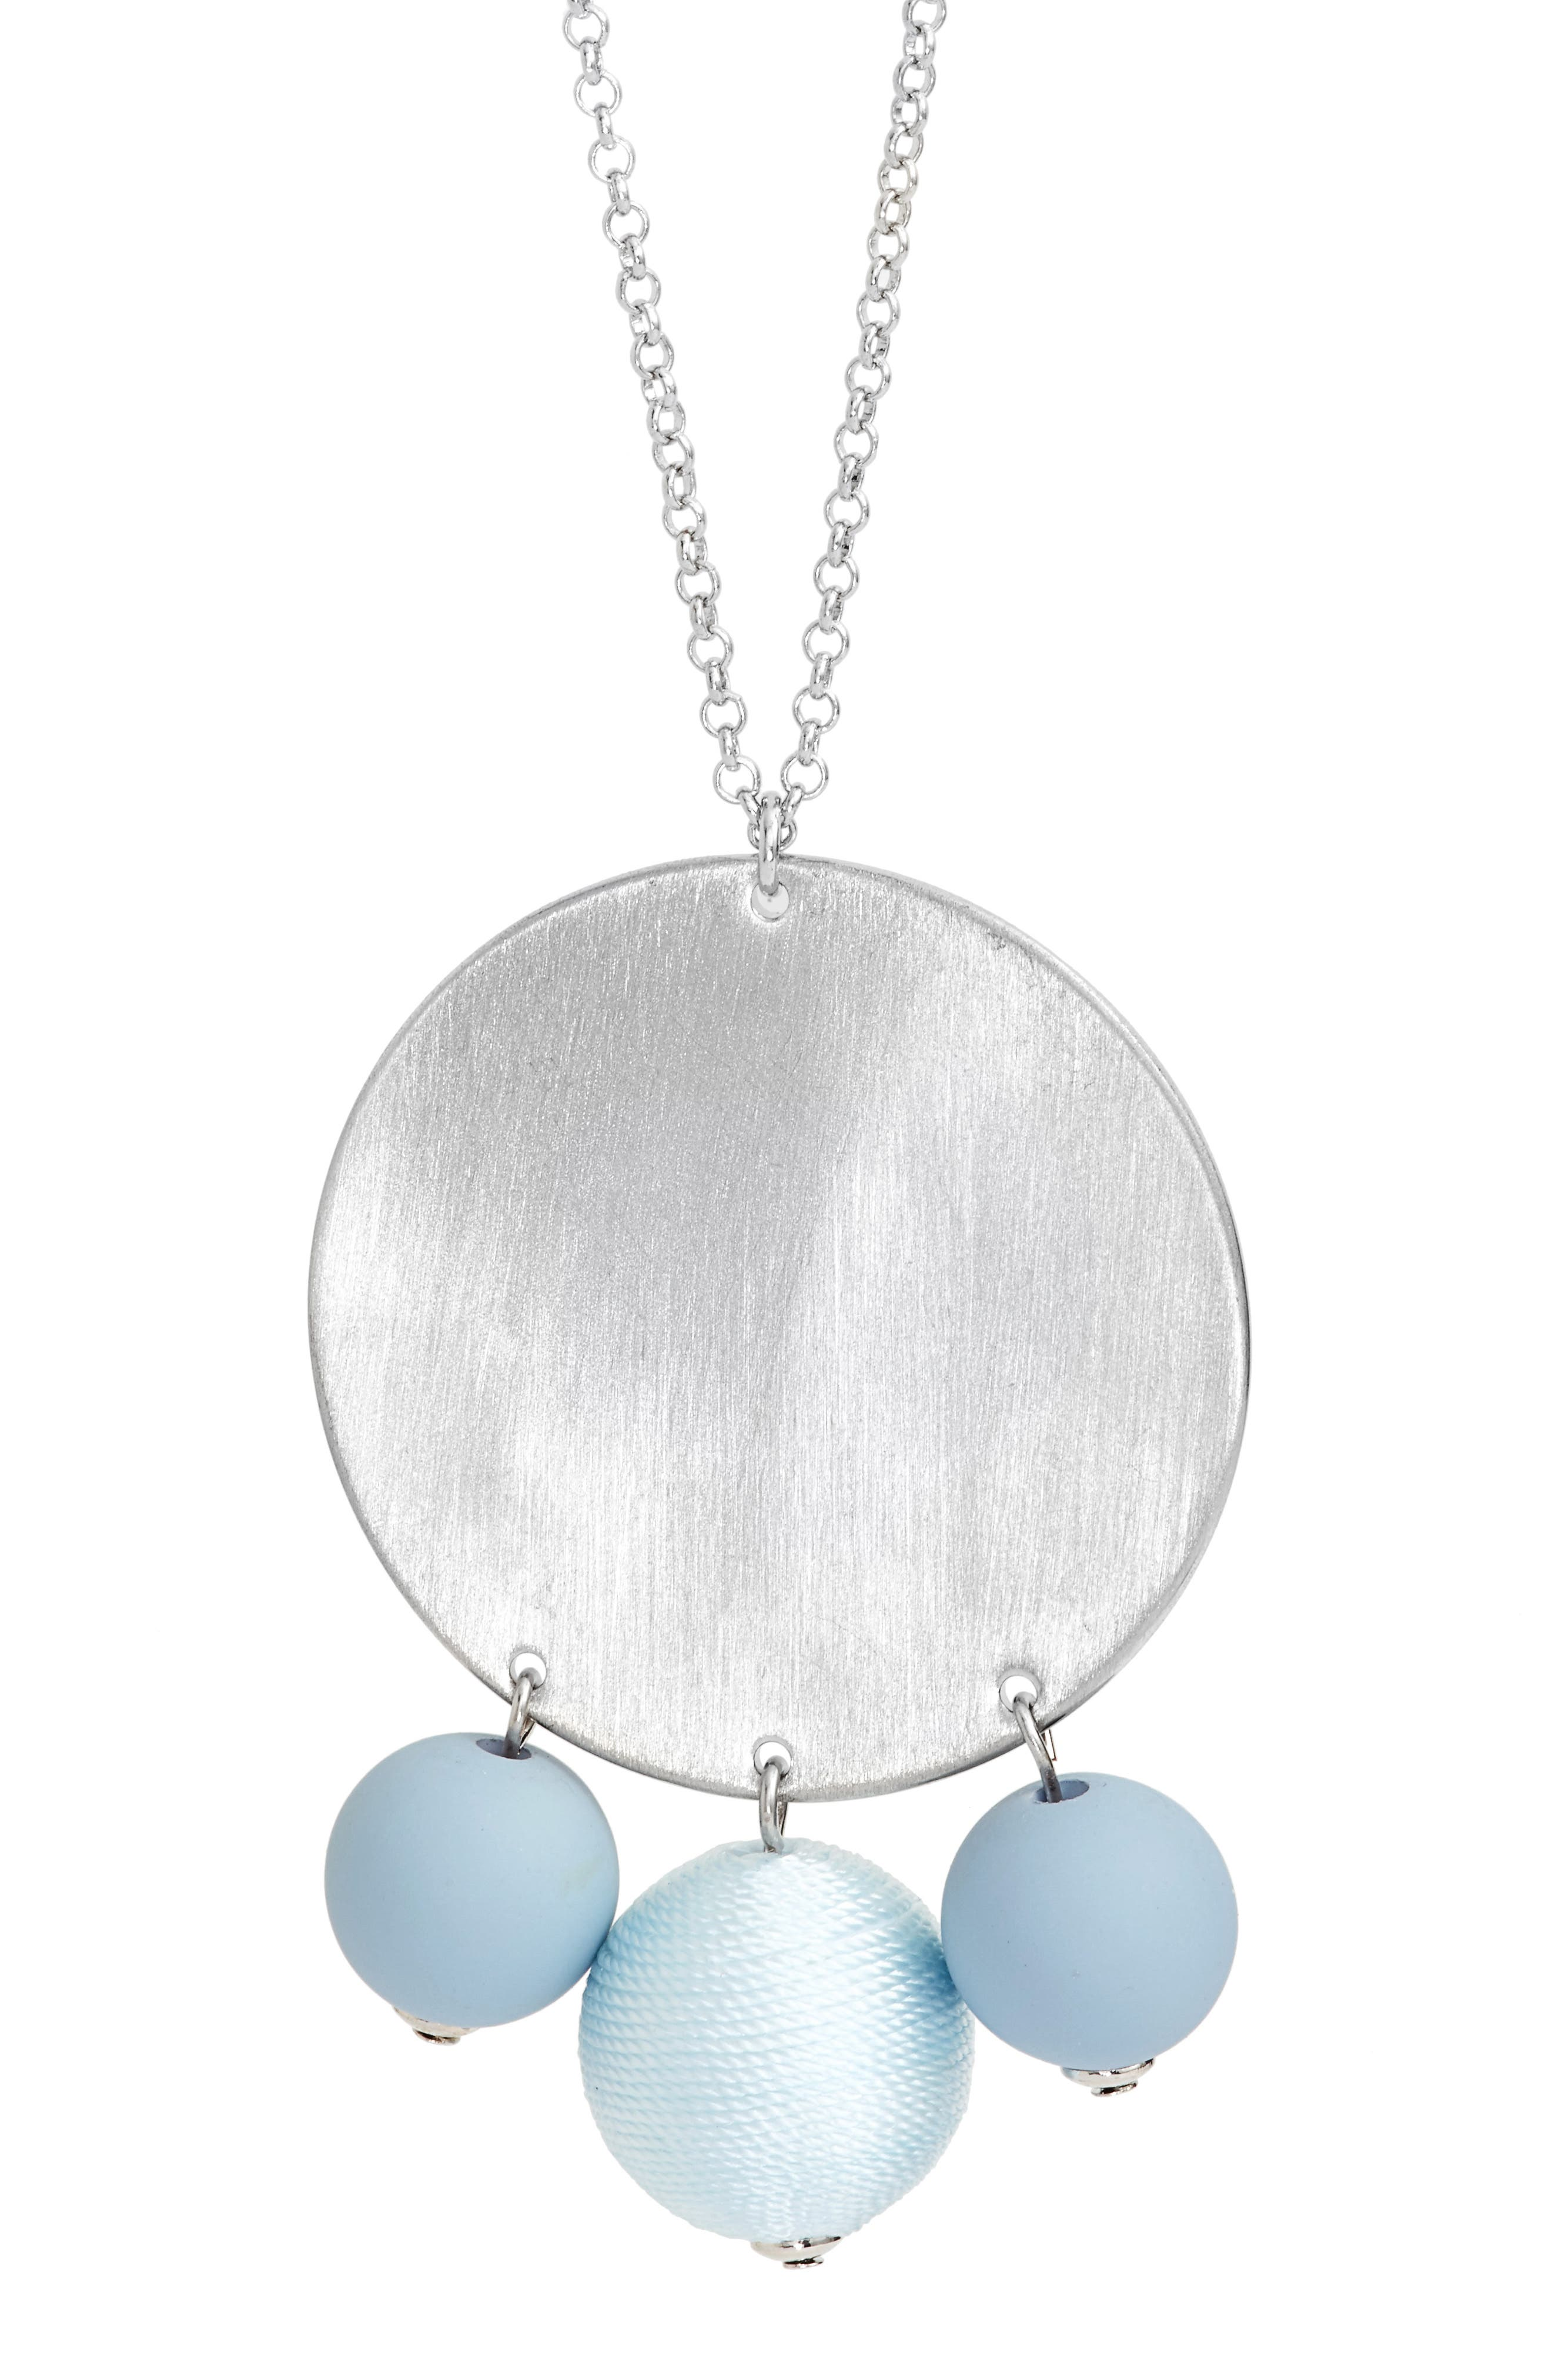 Threaded Disco Ball Statement Necklace,                             Alternate thumbnail 2, color,                             Blue/ Silver